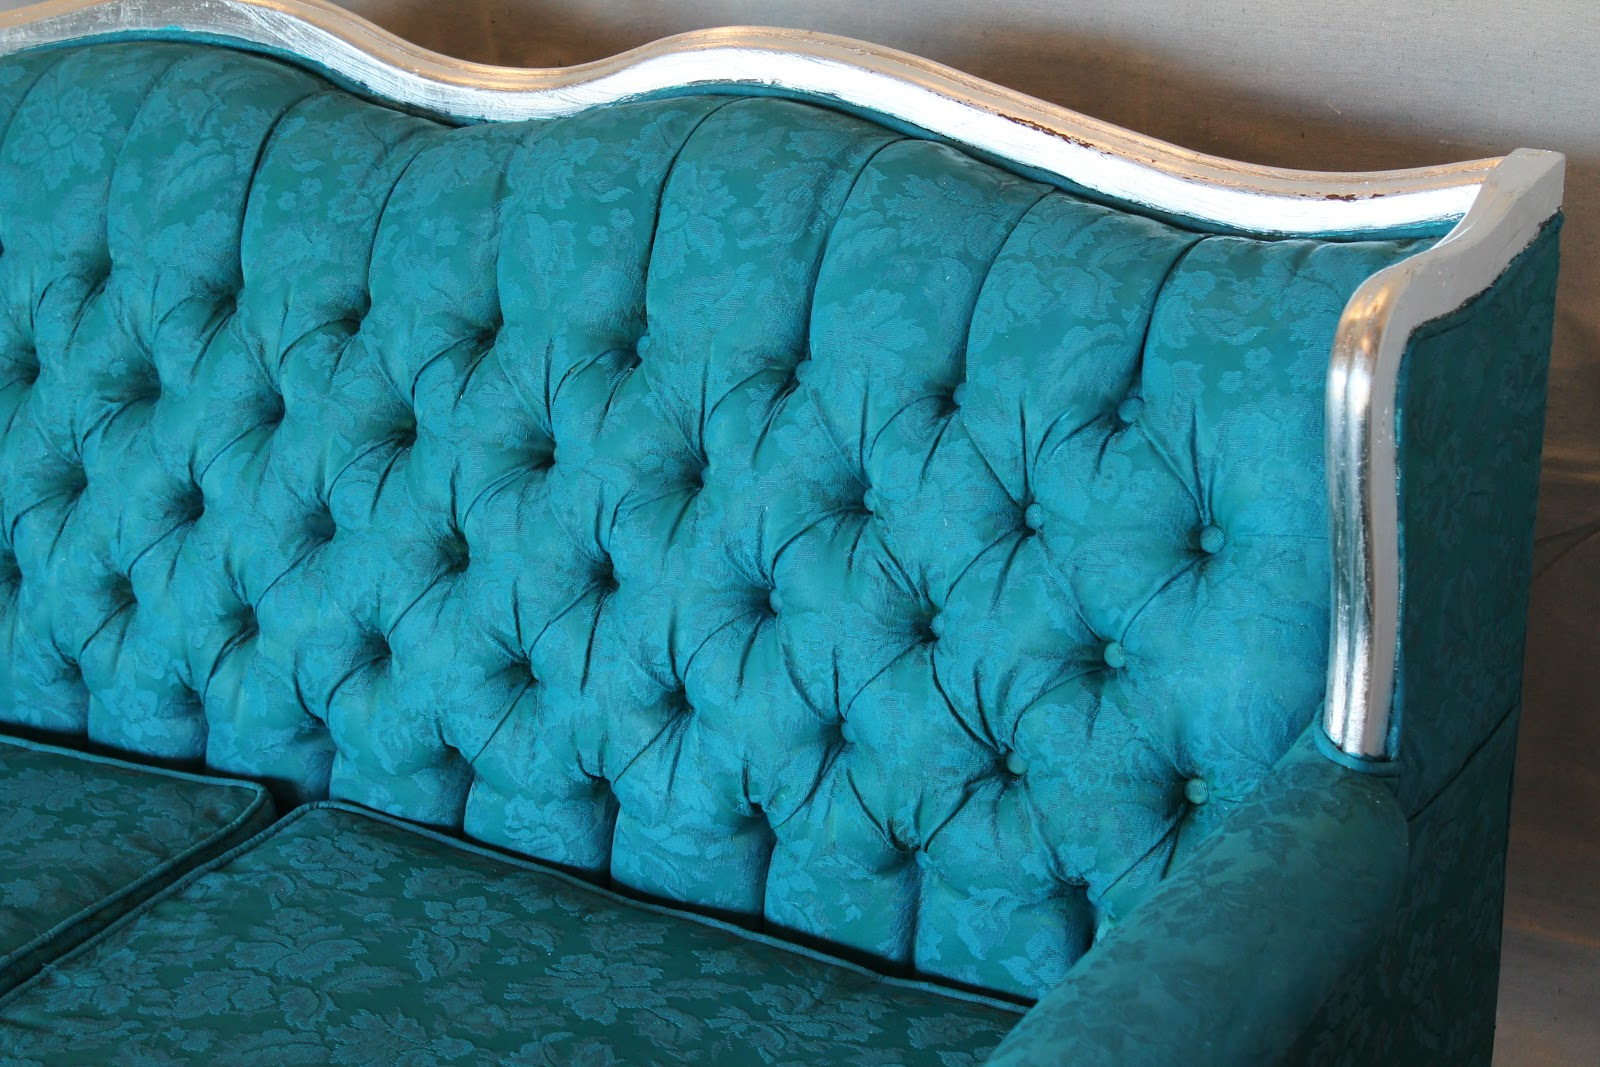 Sofa Fabric Yes You Can Paint The Fabric On An Upholstered Sofa The